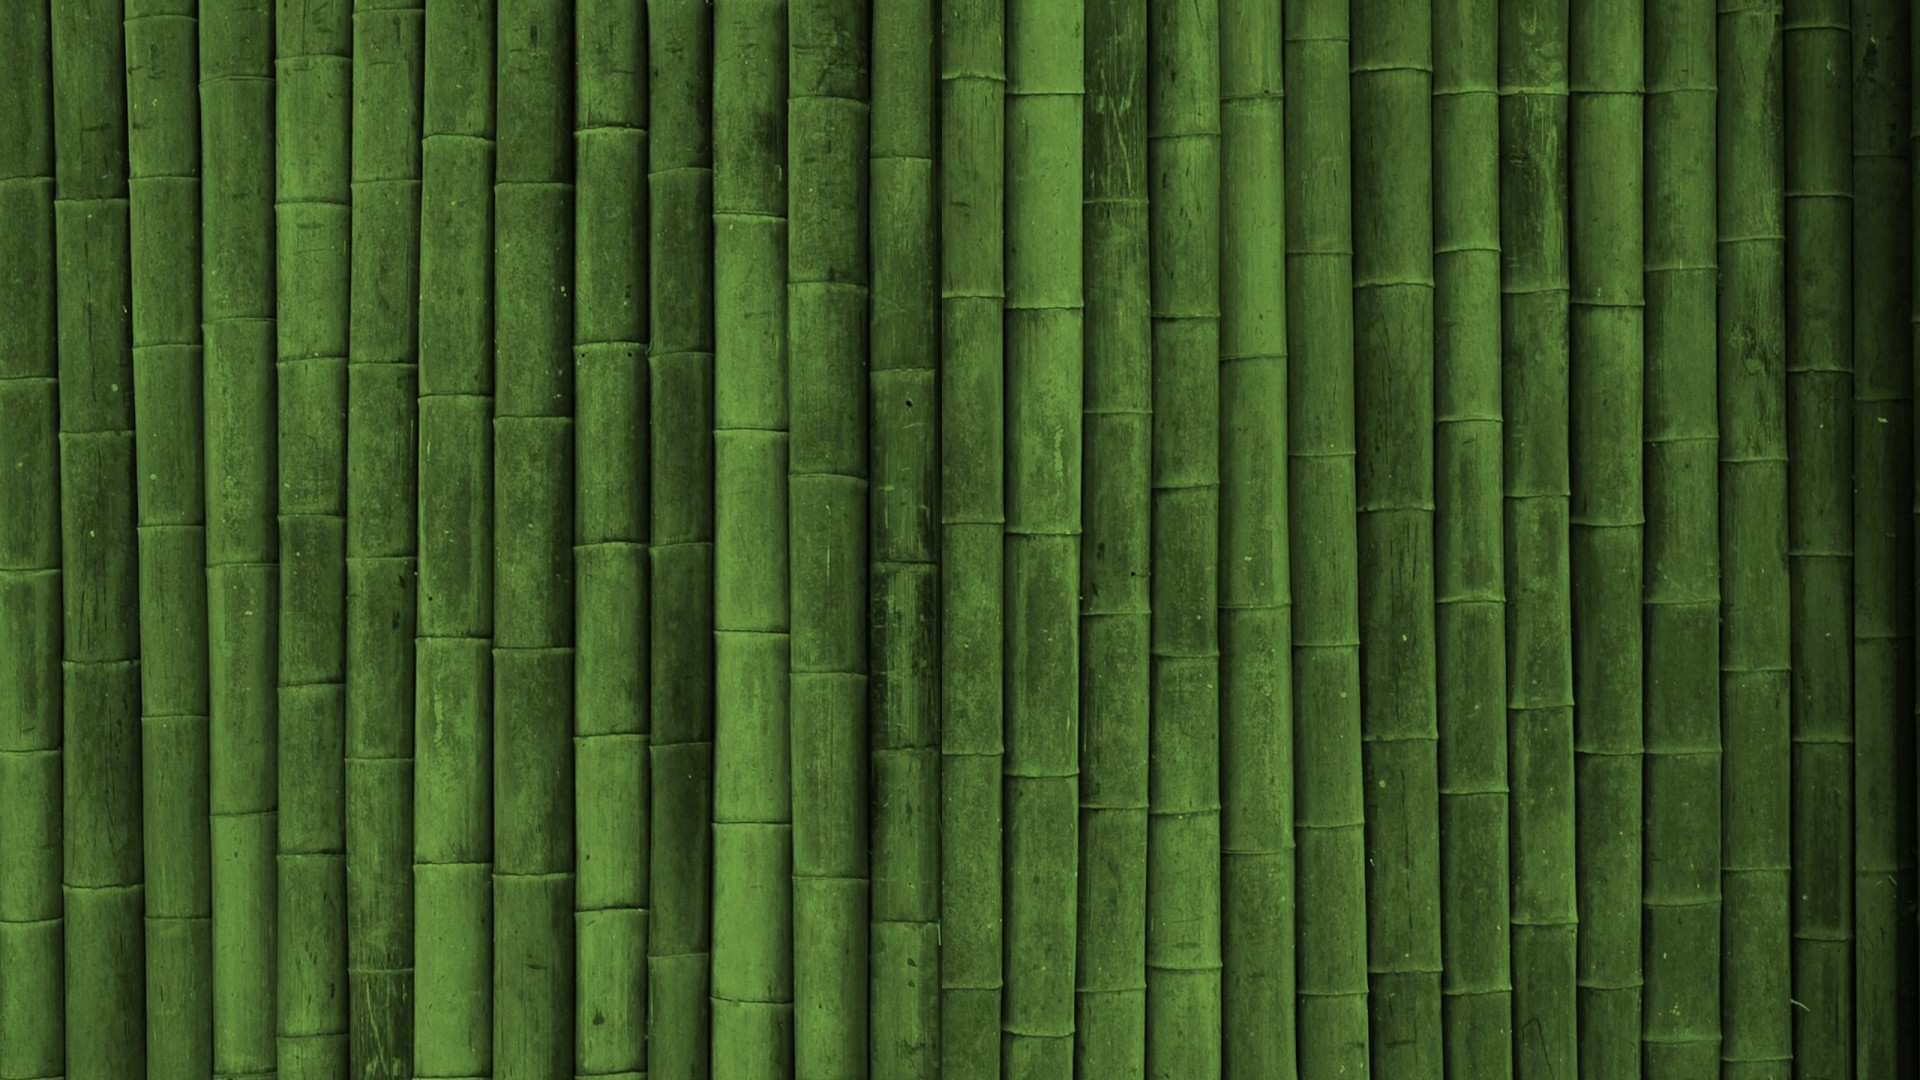 1920x1080 Preview wallpaper bamboo, stick, green, vertical